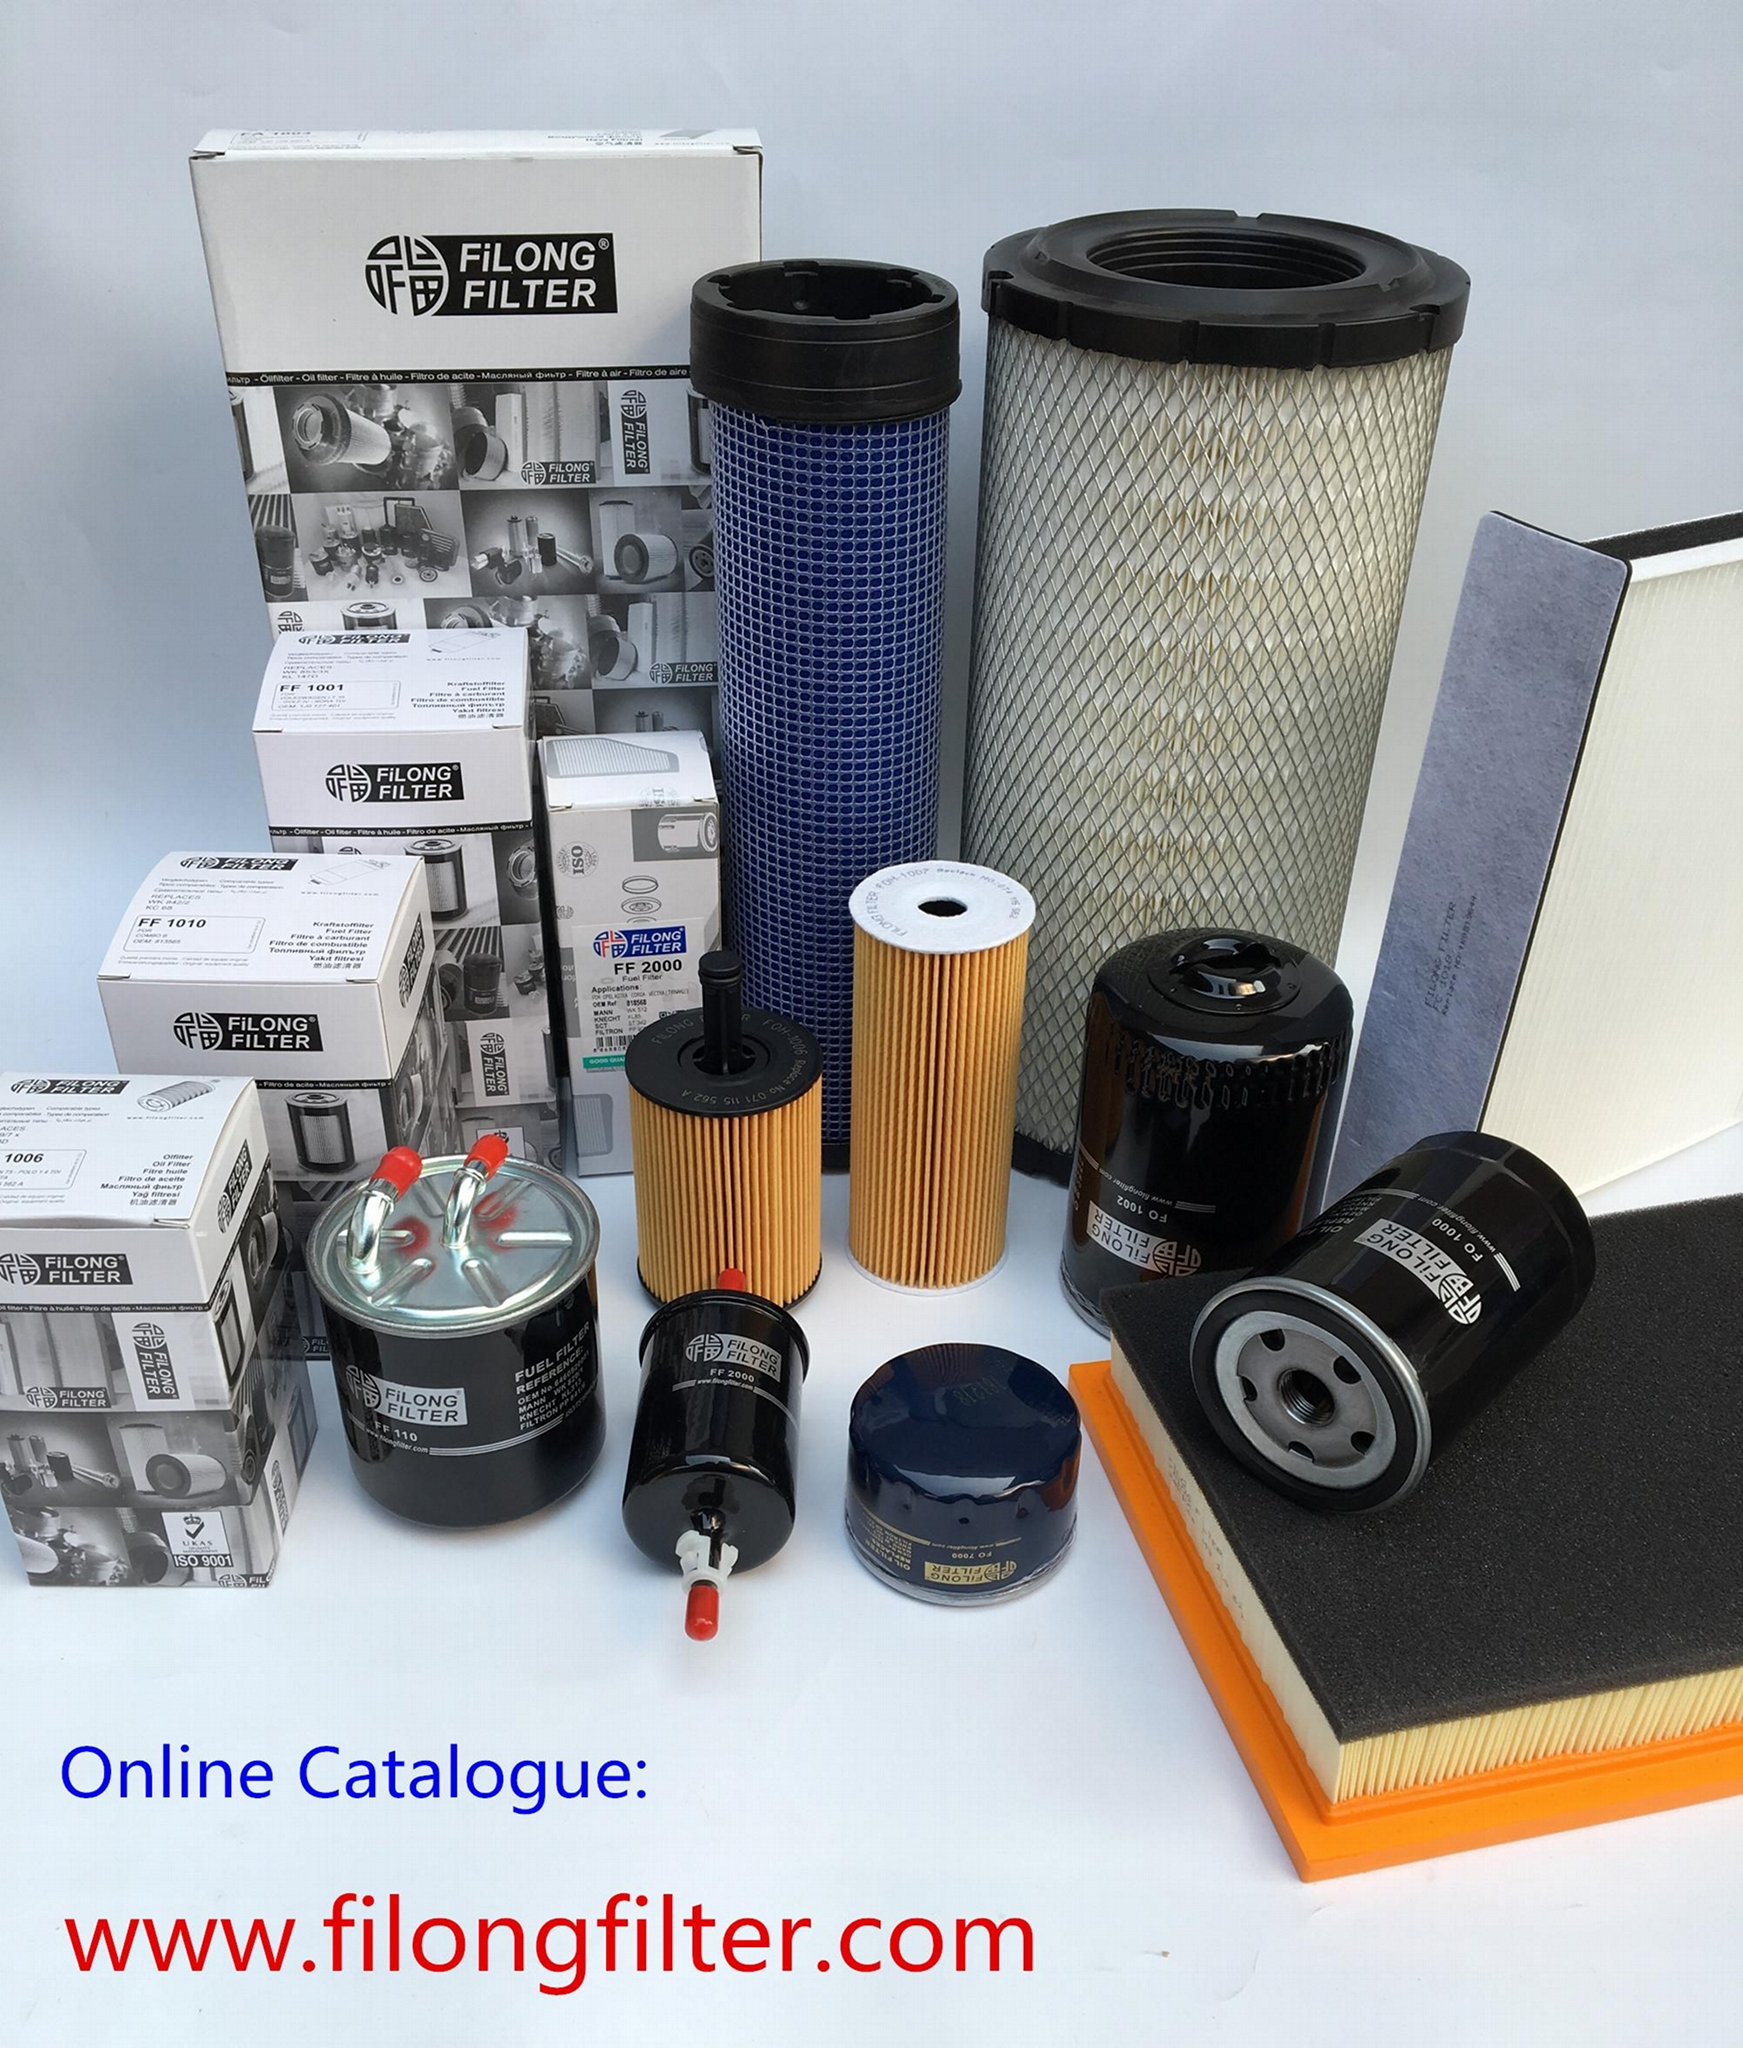 FILONG manufacturer Air Filter FA-8087 17801-36010 1780136010 FOR TOYOTA  AIR FILTER,FILONG Automotive filters Manufacturers in China, FILONG Automobile filters Manufacturers in China,FILONG Automotive filters  Suppliers In China,FILONG Automobile filters  Suppliers In China,